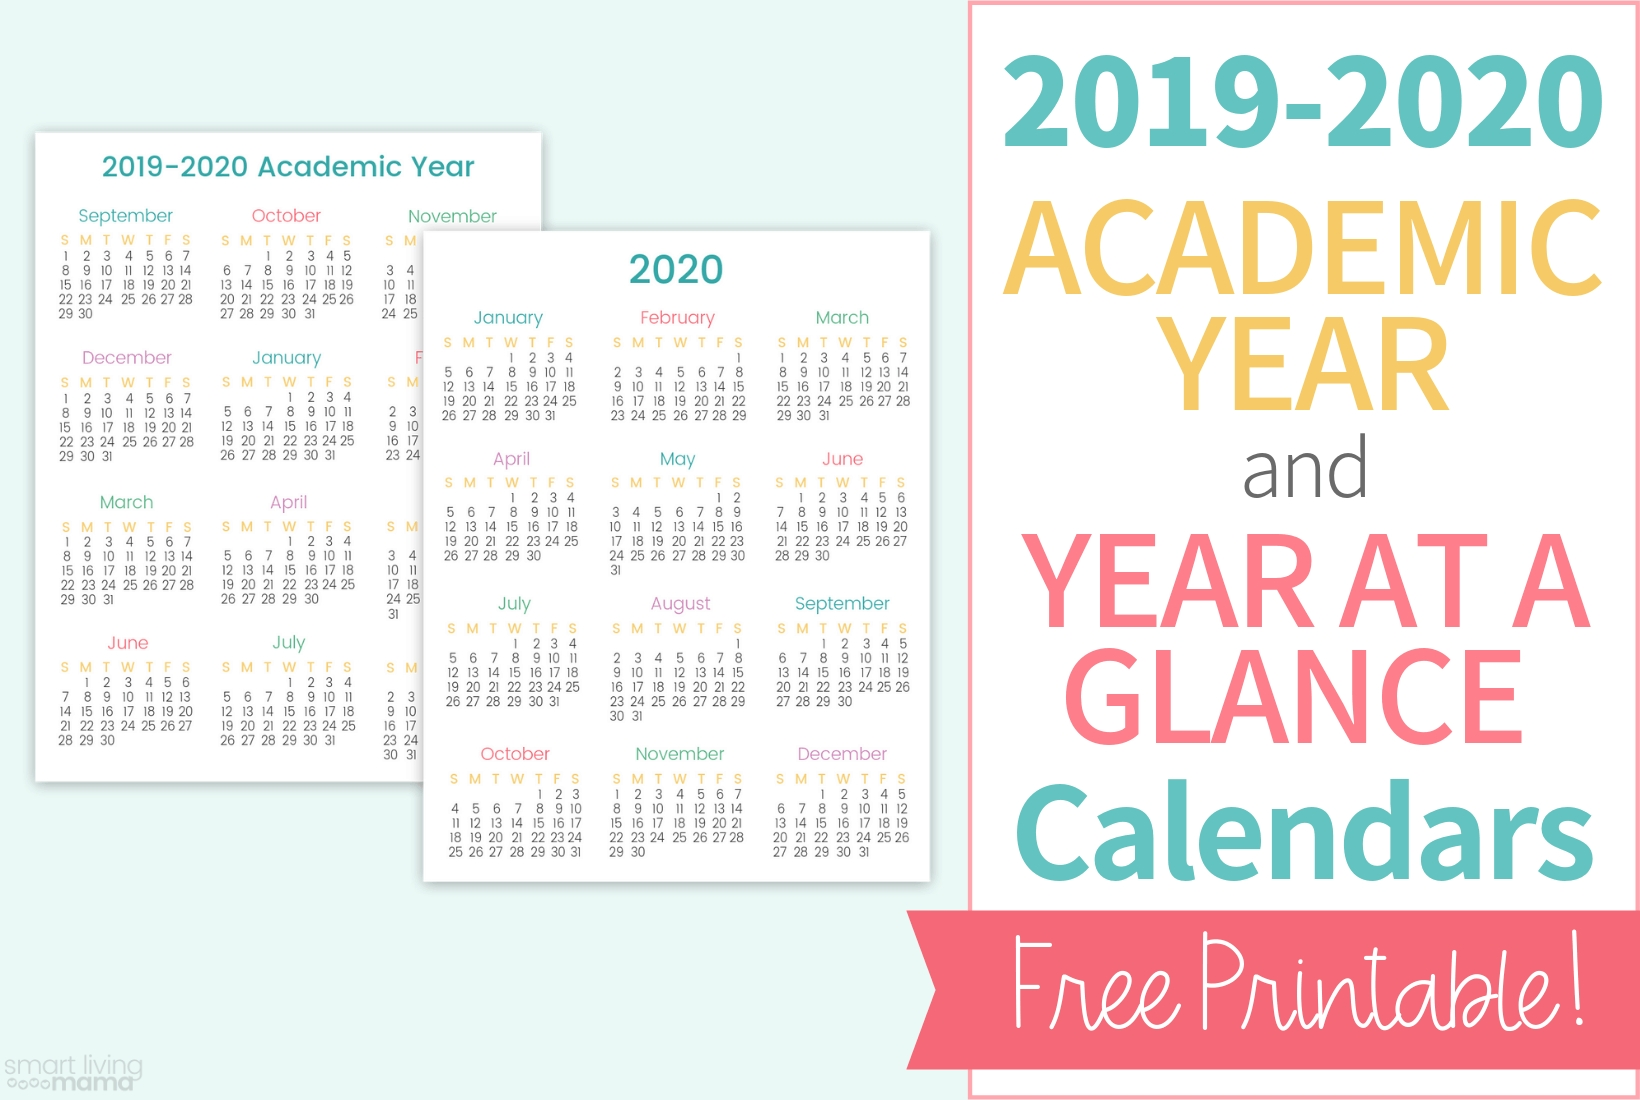 Colorful Printable Calendars For 2019-2020 | Smart Living Mama with regard to 2020 Year At A Glance Printable Calendar